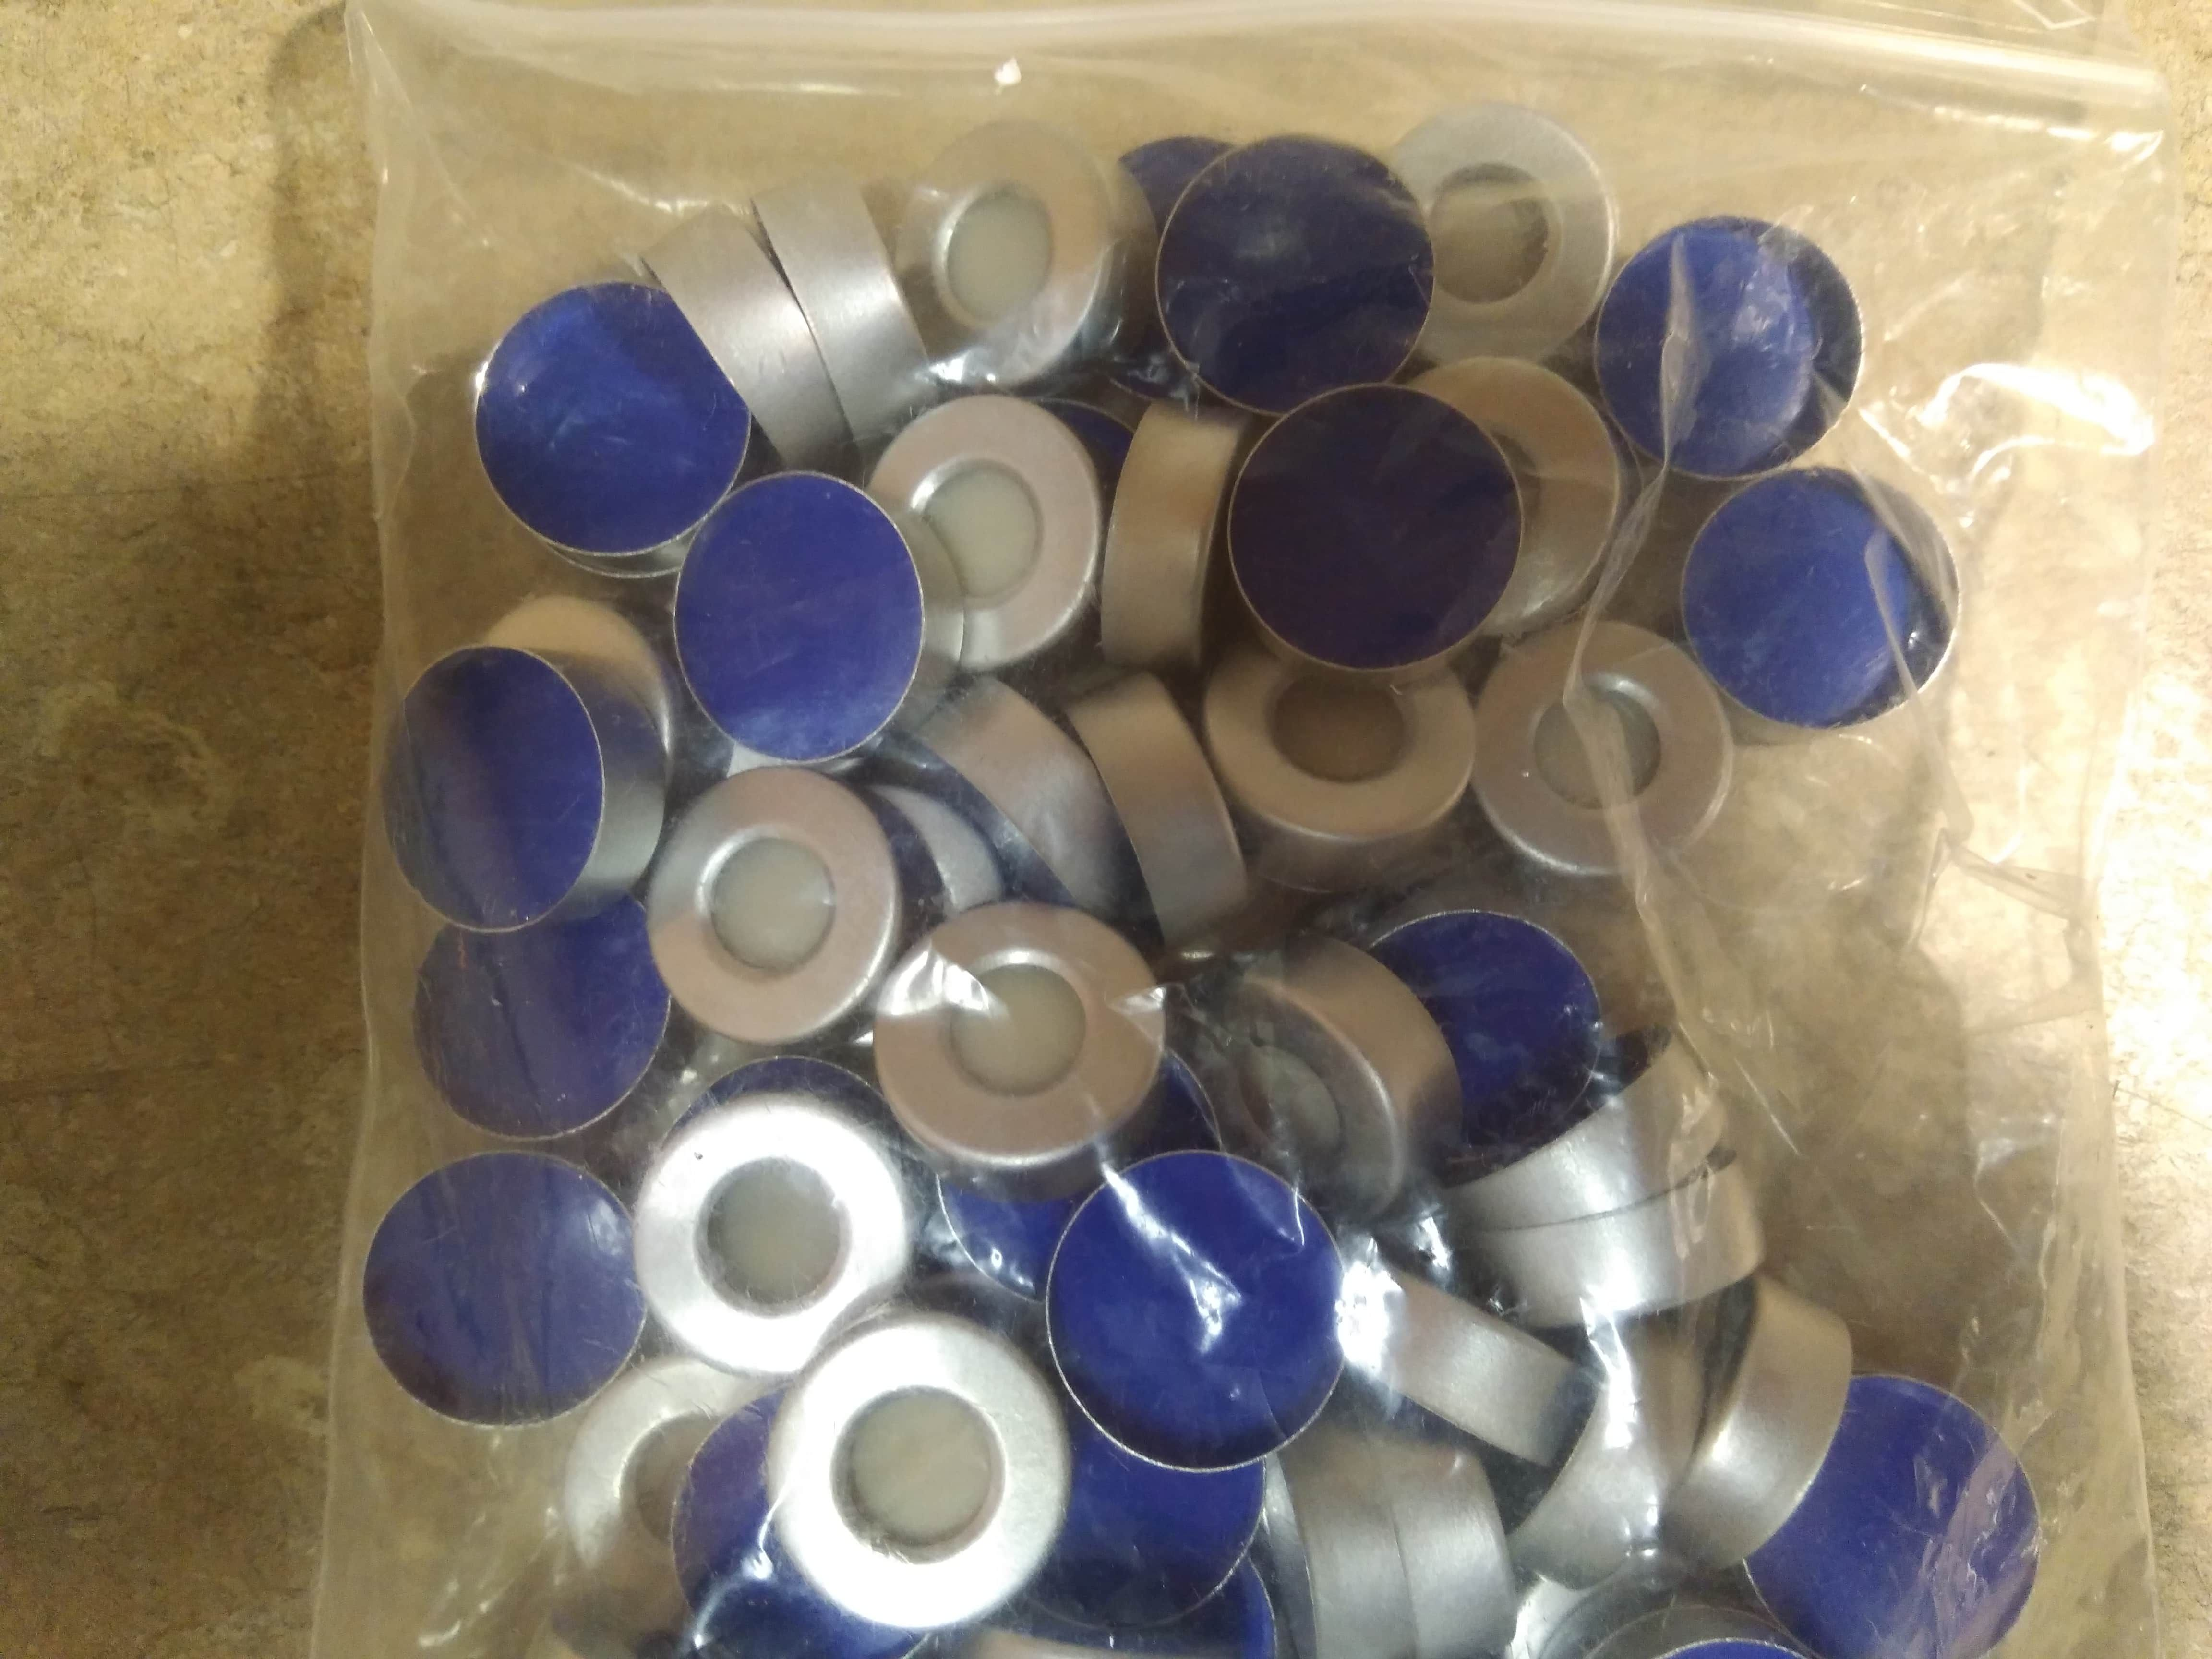 NEW 100 Biotage Caps and Septa Septum 352298 for Microwave Reaction Vial